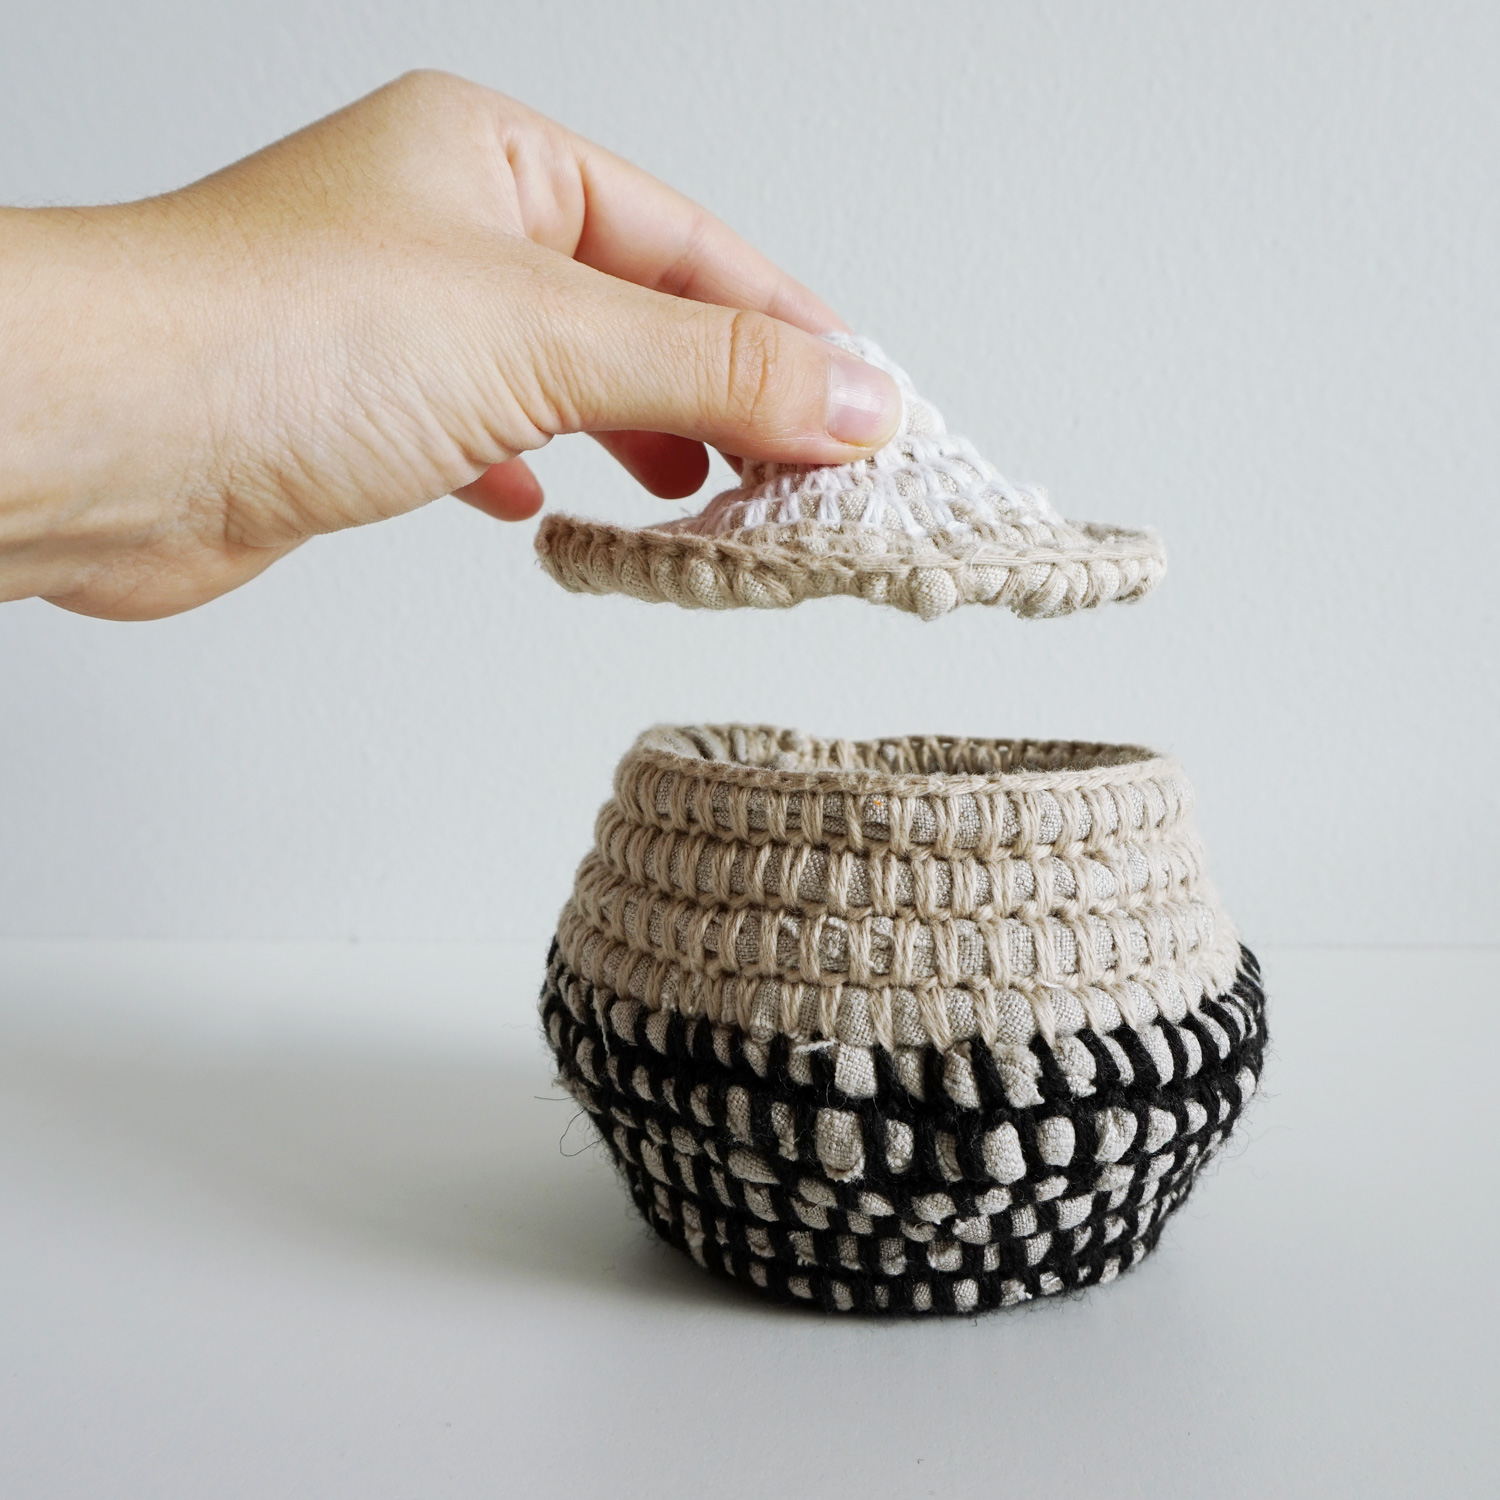 An assortment of color blocked crocheted baskets to use as storage for your yarns, as planters or textured decor elements.